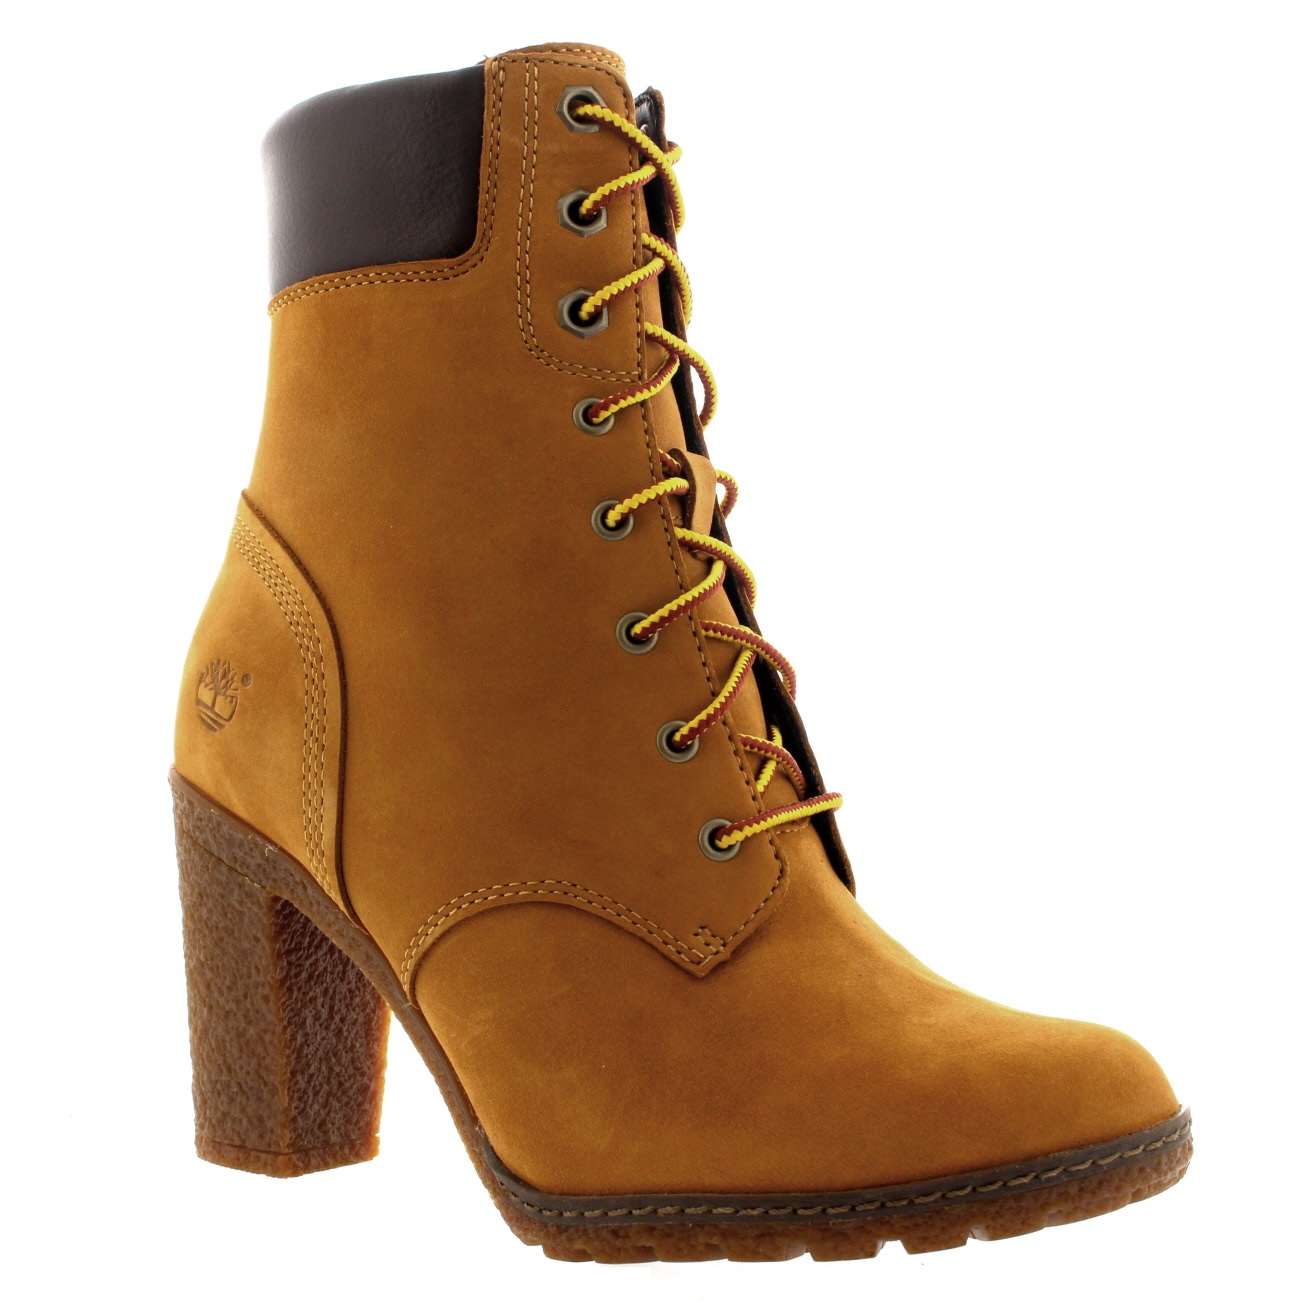 Timberland Heel Boots Women S Shoes